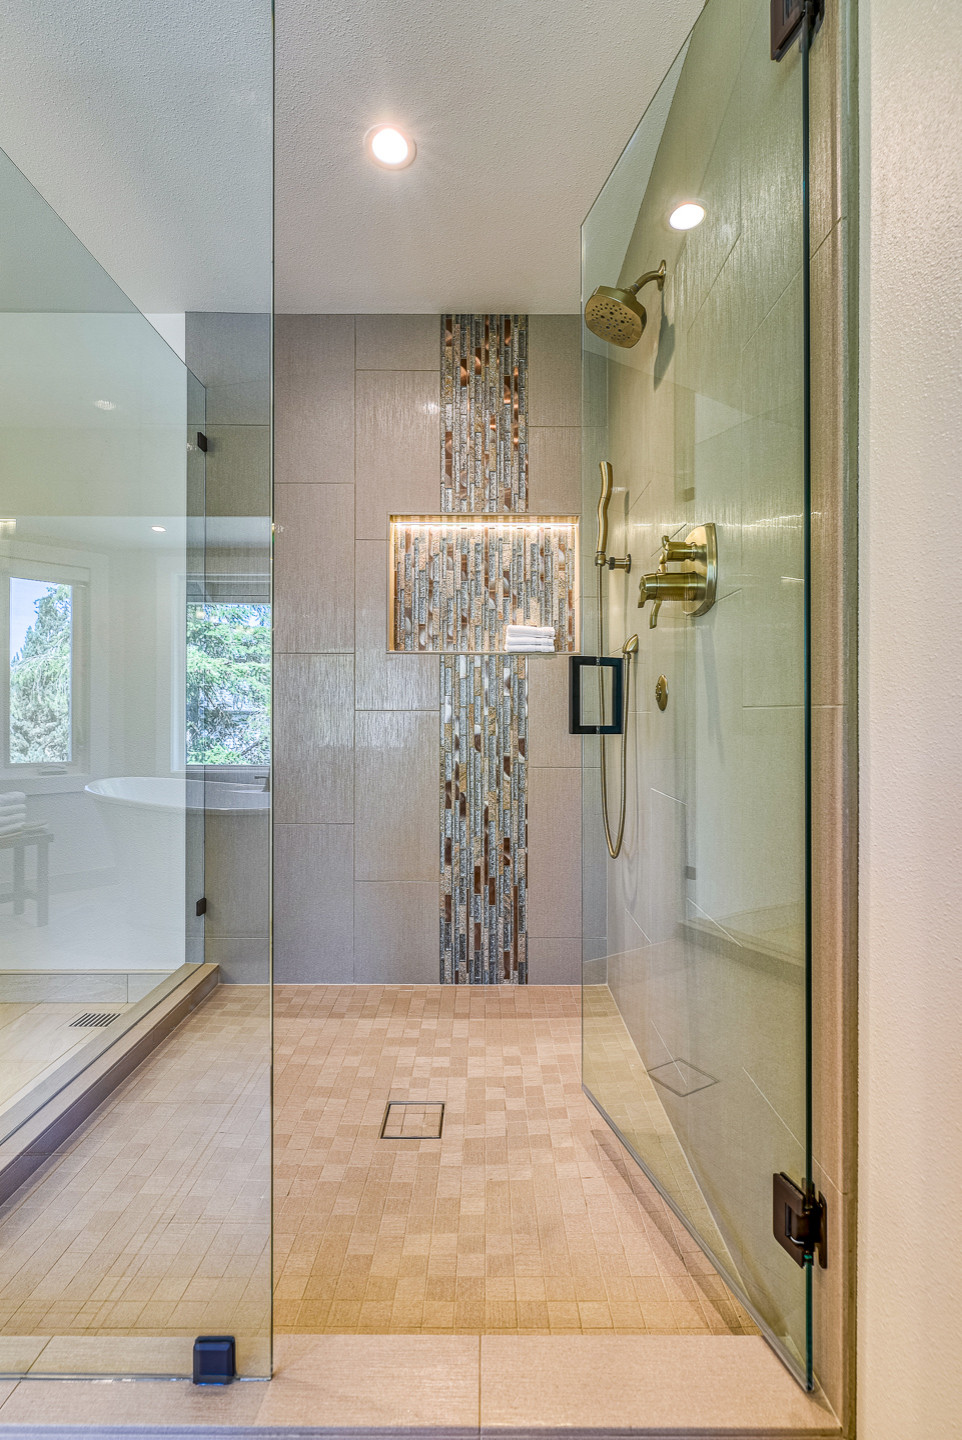 This 90's beauty had an odd layout with a built-in tub deck.  It had a closed off layout and was dated with striped wallpaper, tiled countertops and gold fixtures. We removed the tub deck and installe